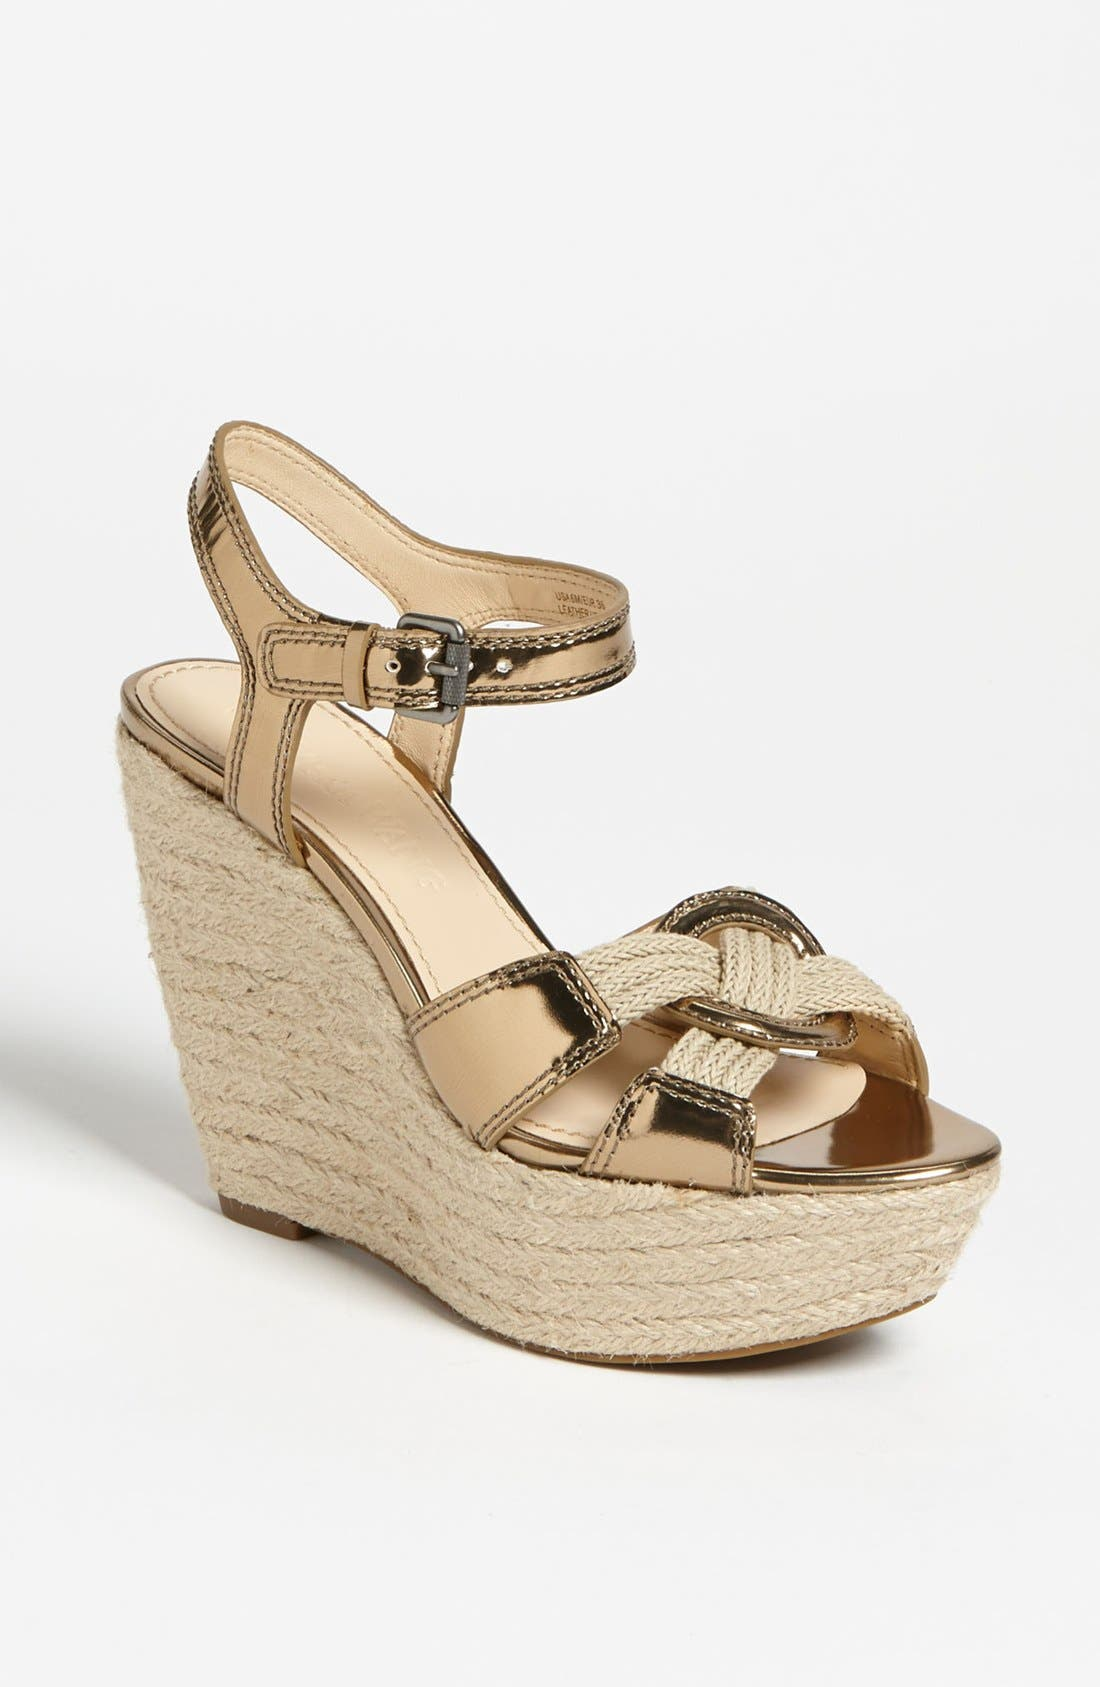 Alternate Image 1 Selected - Vera Wang Footwear 'Tamarind' Wedge Sandal (Online Only)